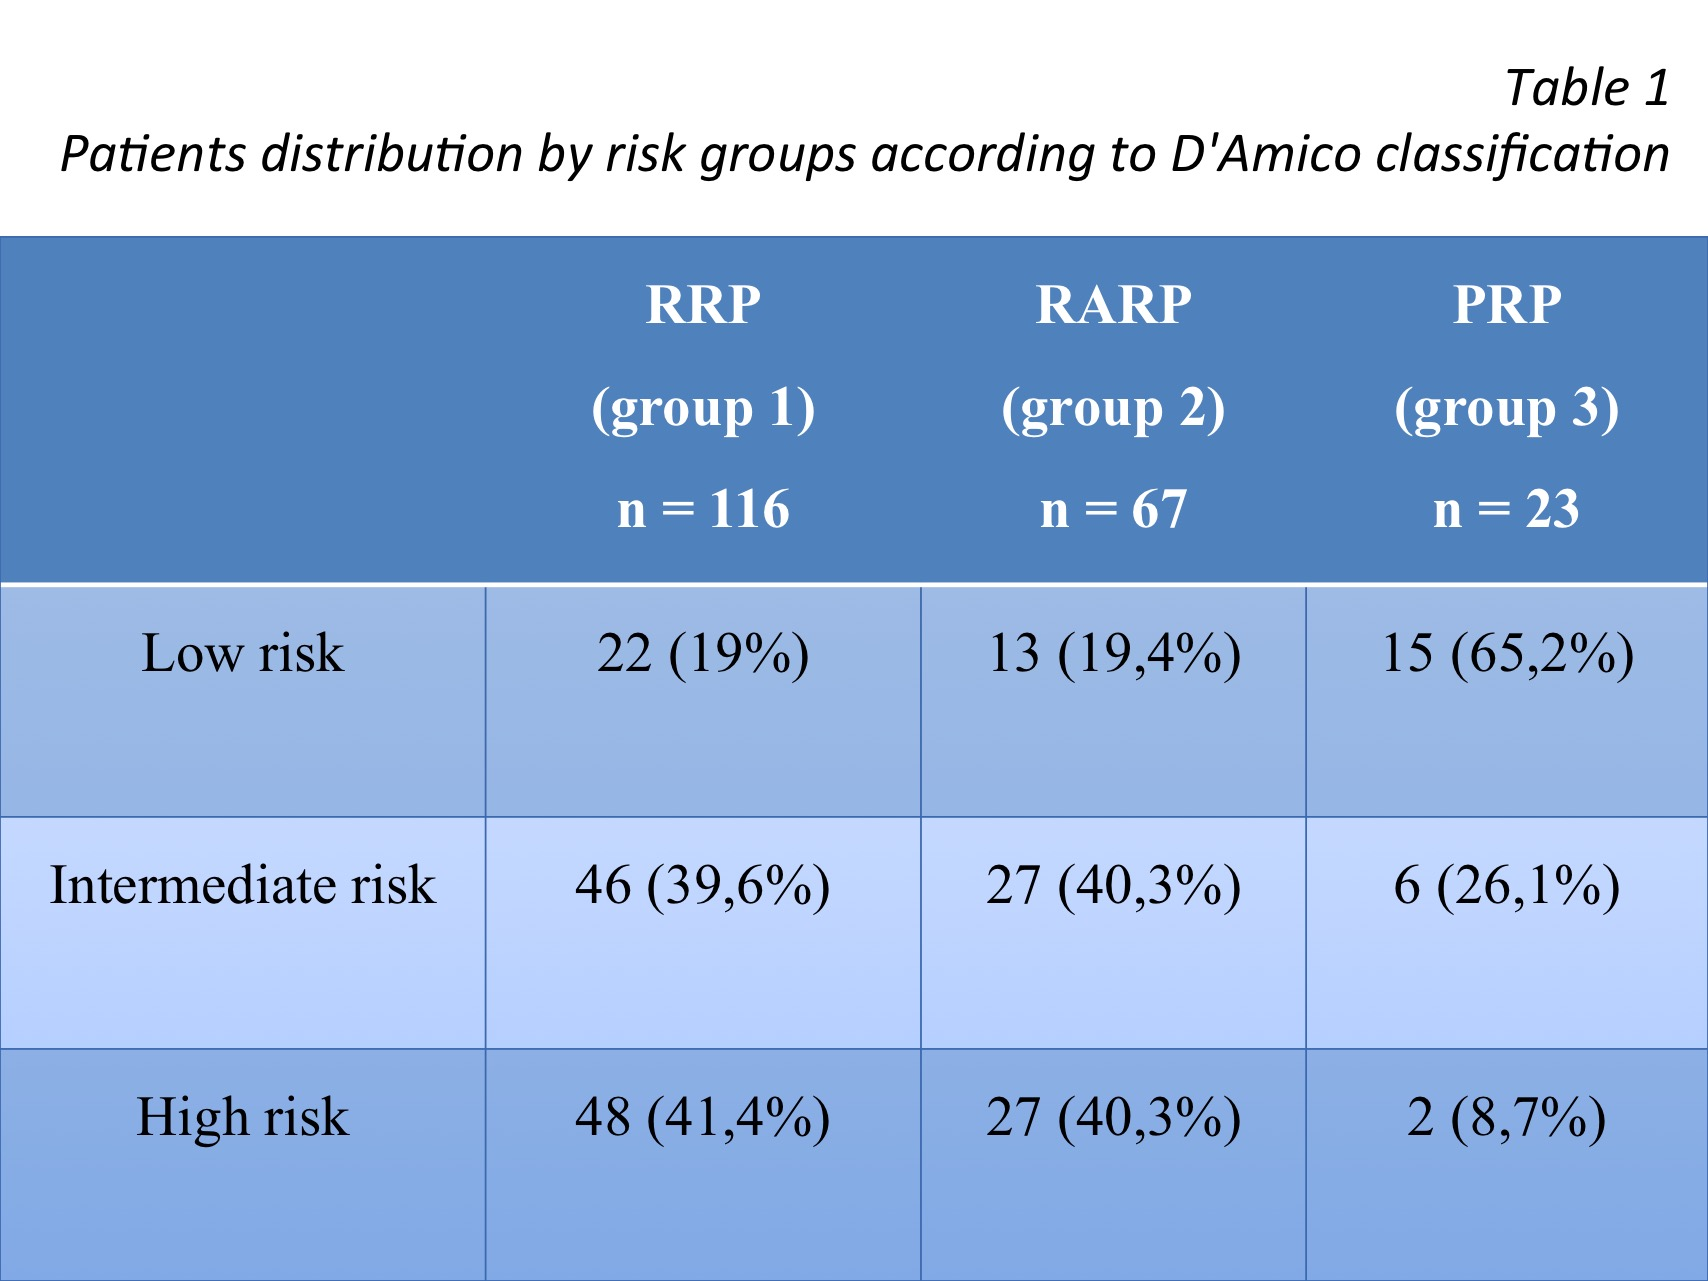 Patients distribution by risk groups according to D'Amico classification